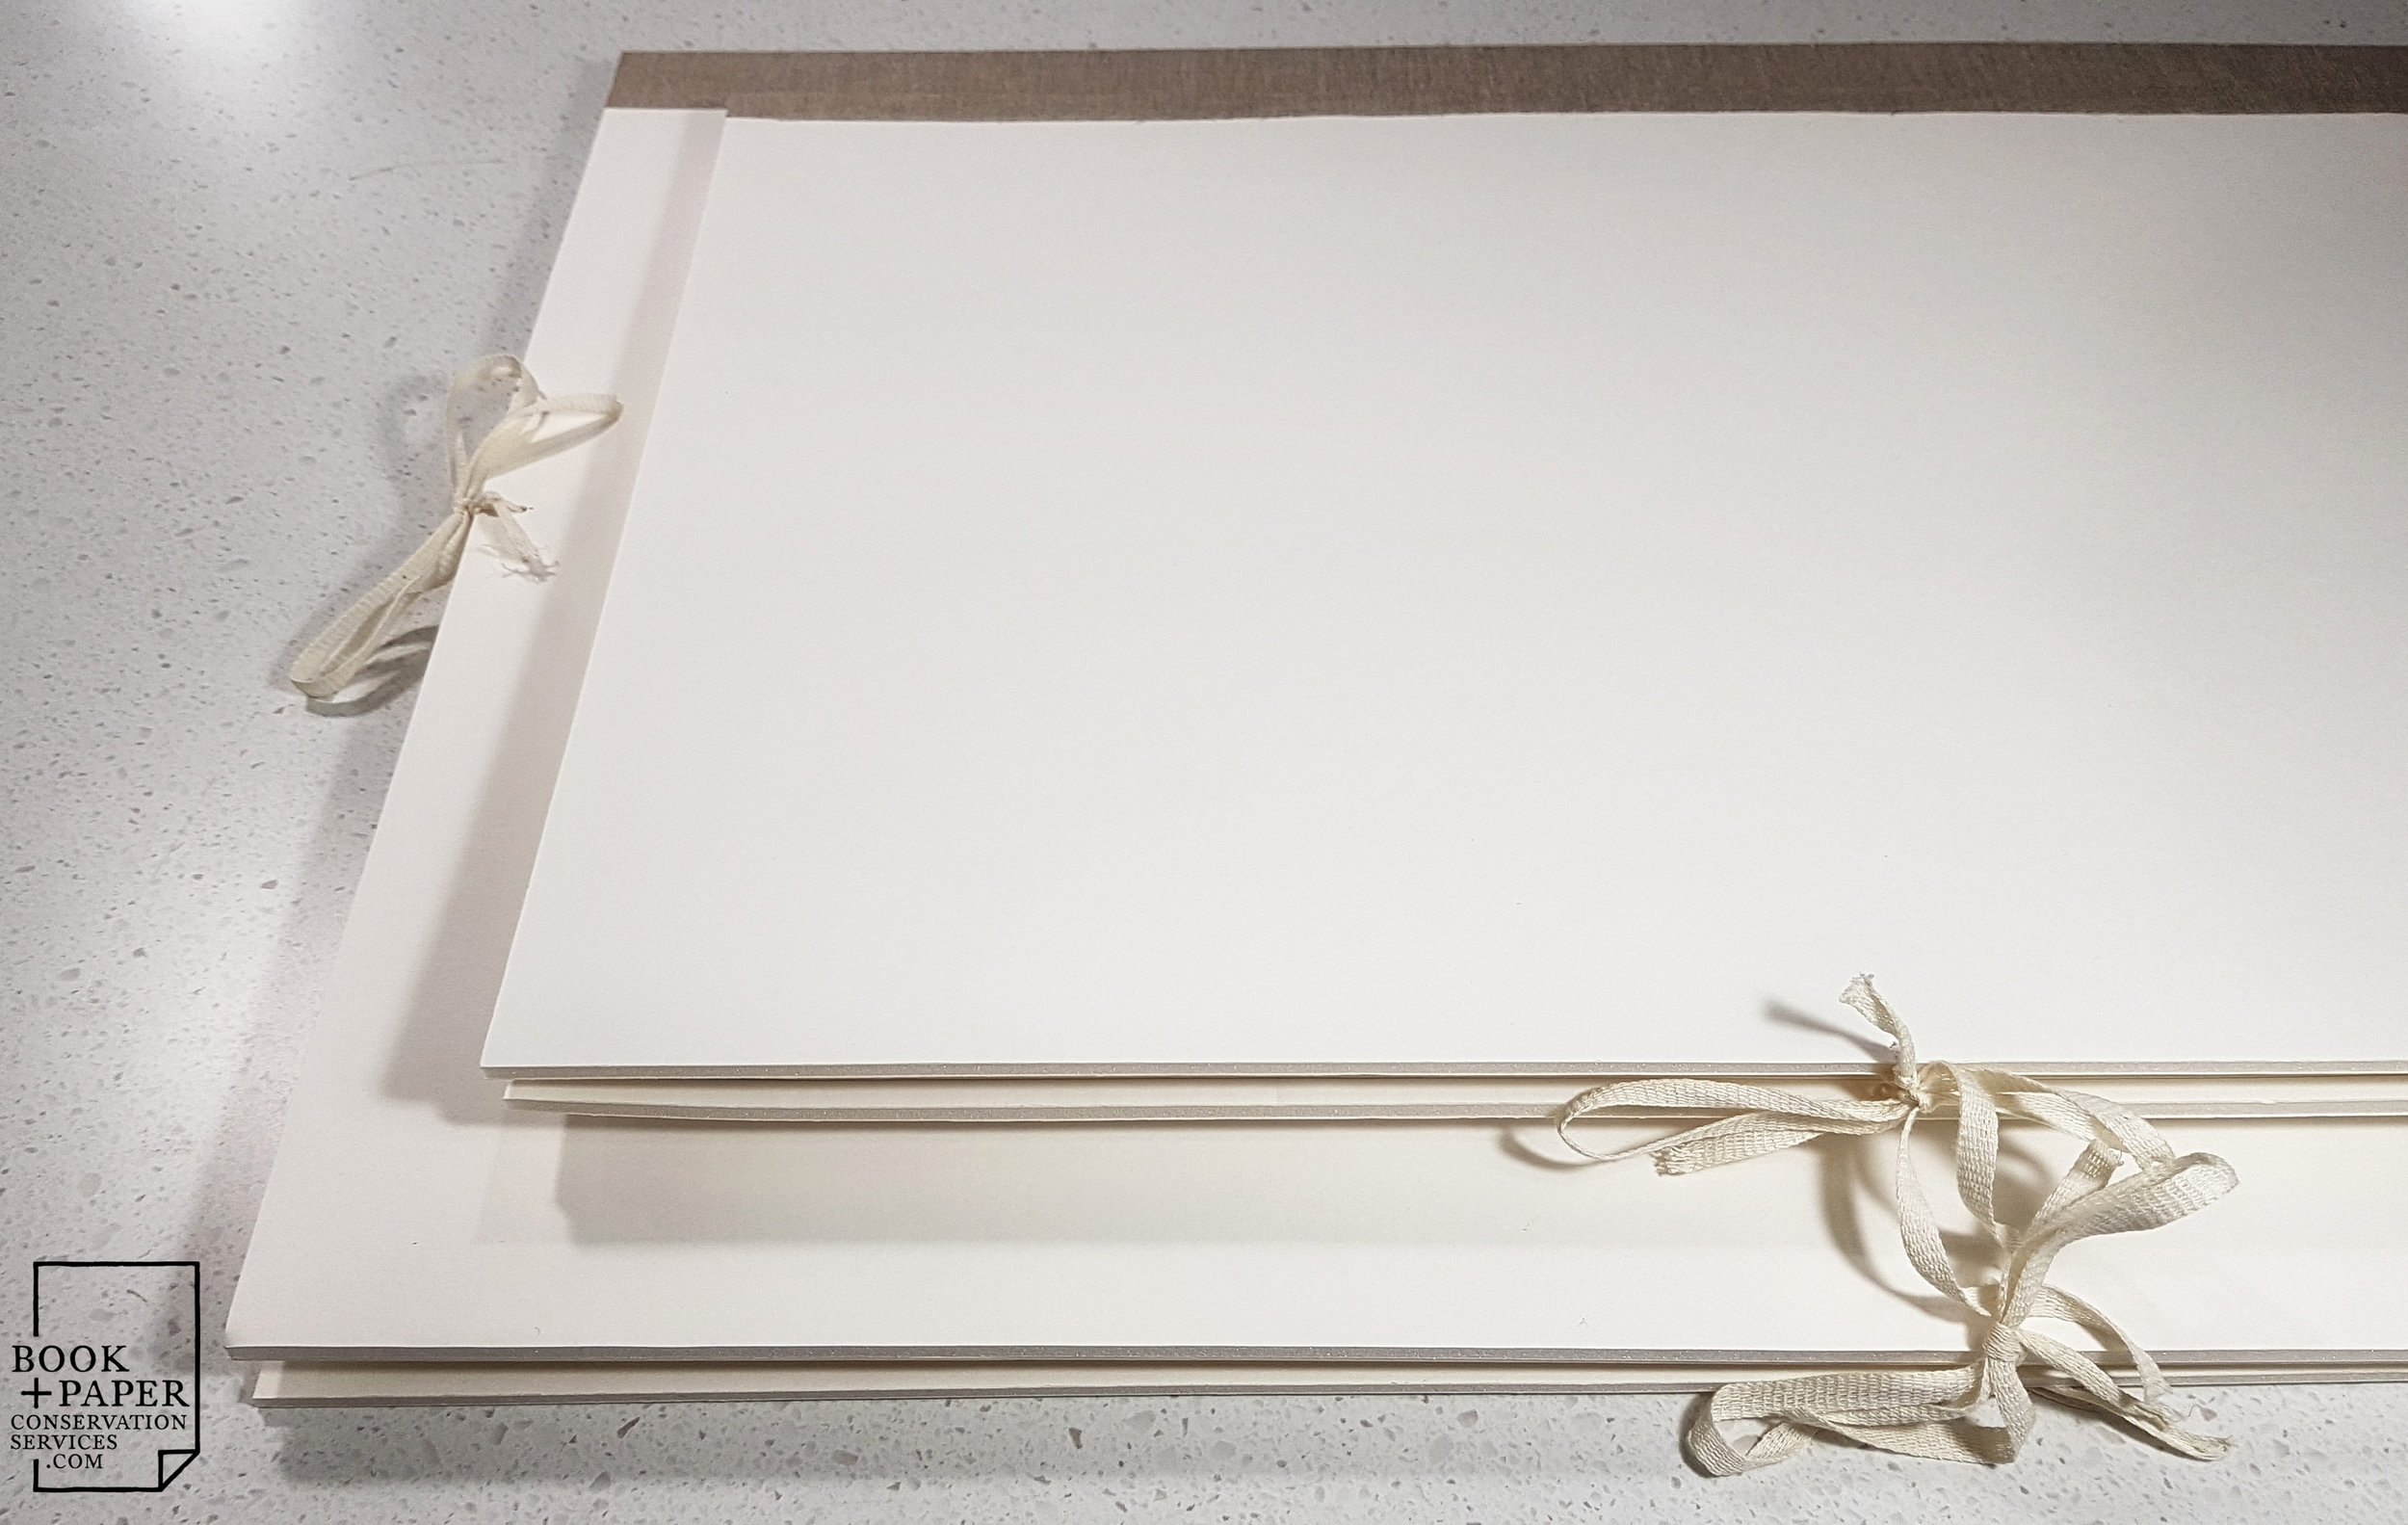 Custom archival storage folders made to house family history documents once they have been conserved at our studio.